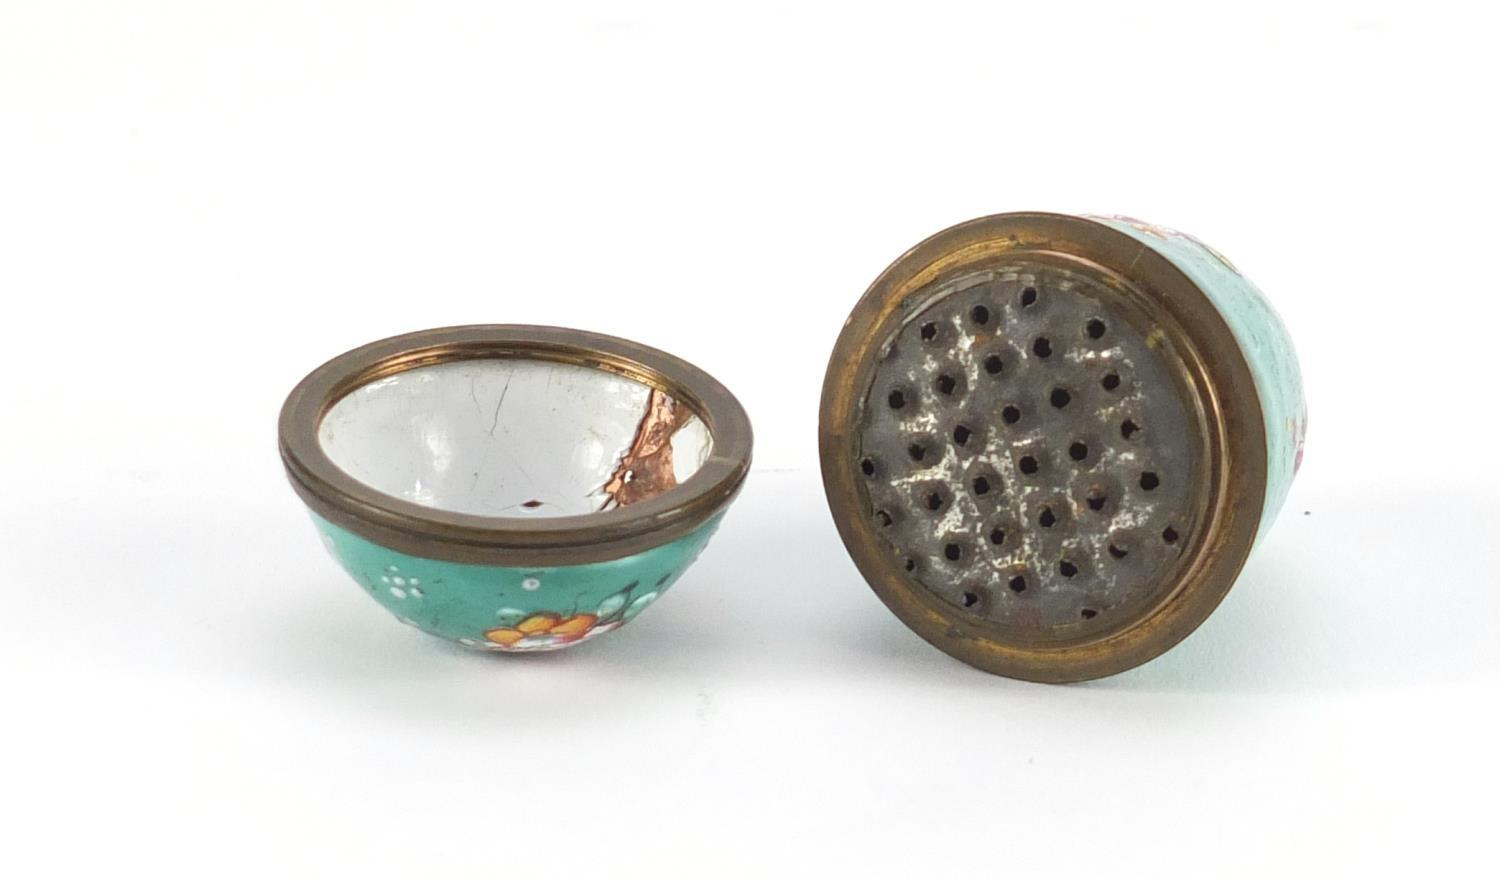 Lot 44 - 18th century Bilston enamel nutmeg grater hand painted with flowers, 5cm high :For Further Condition